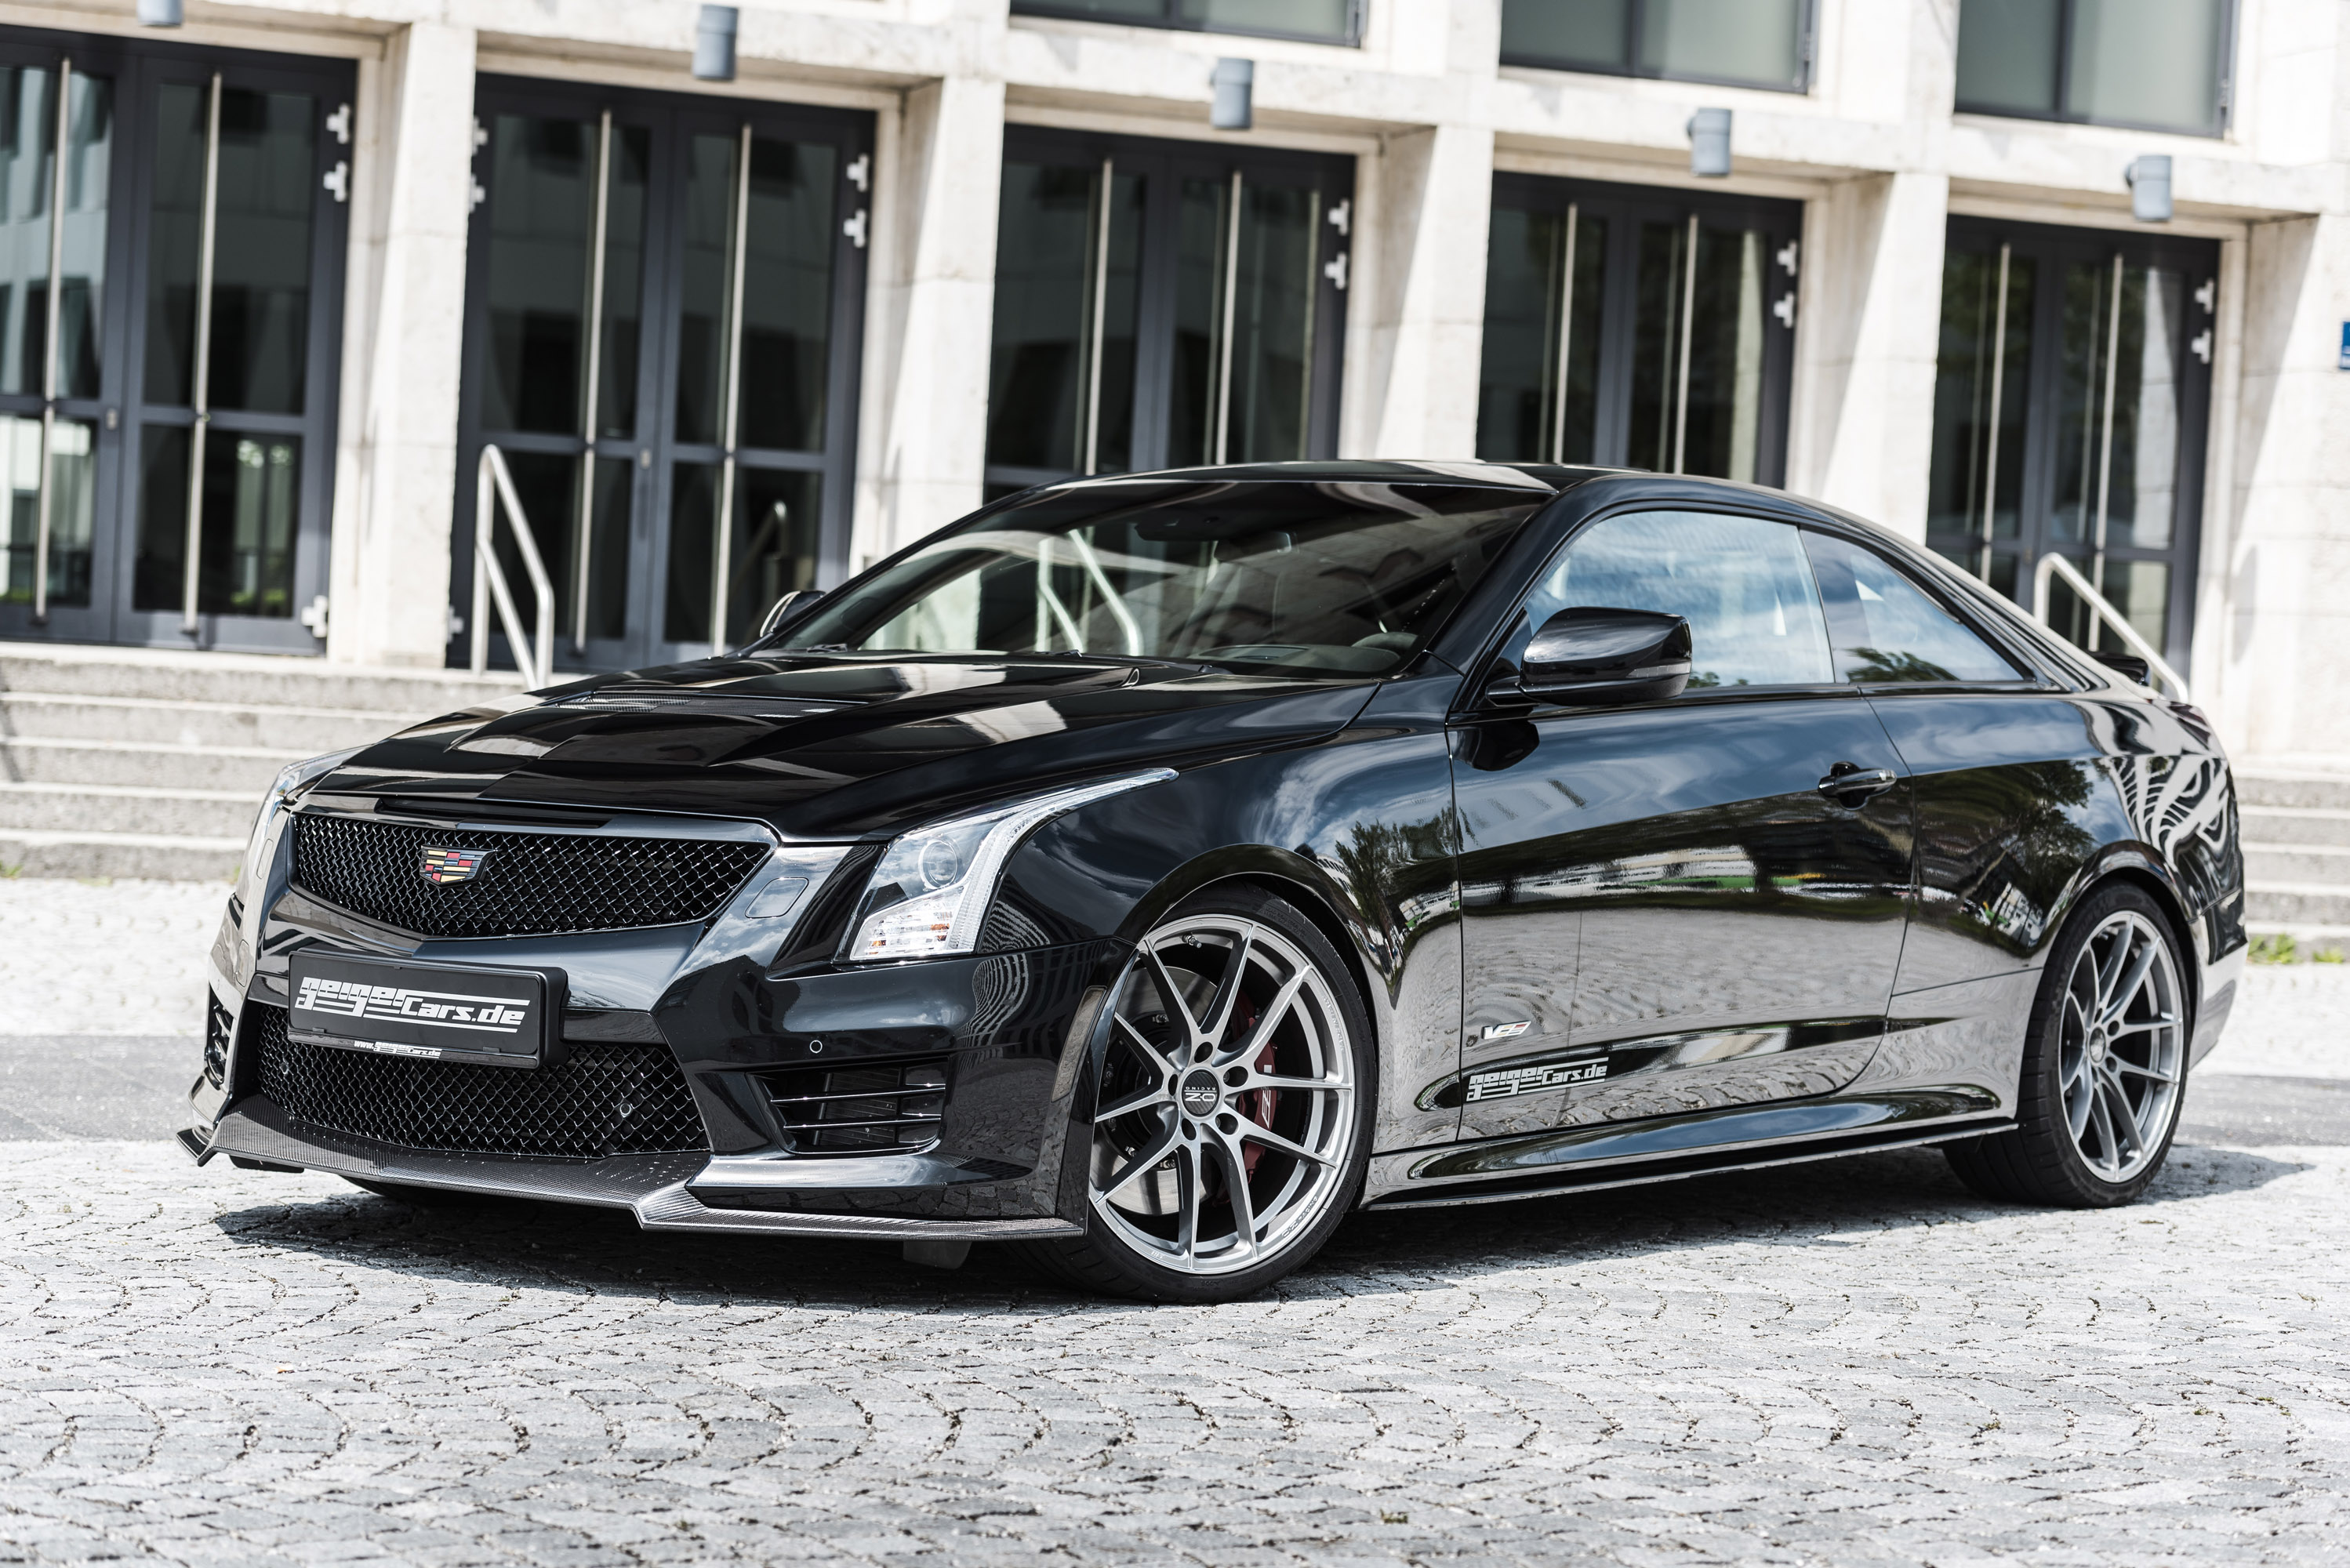 Cadillac Cts Coupe 2017 >> 2016 Cadillac ATS-V Coupe Twin Turbo Black Line